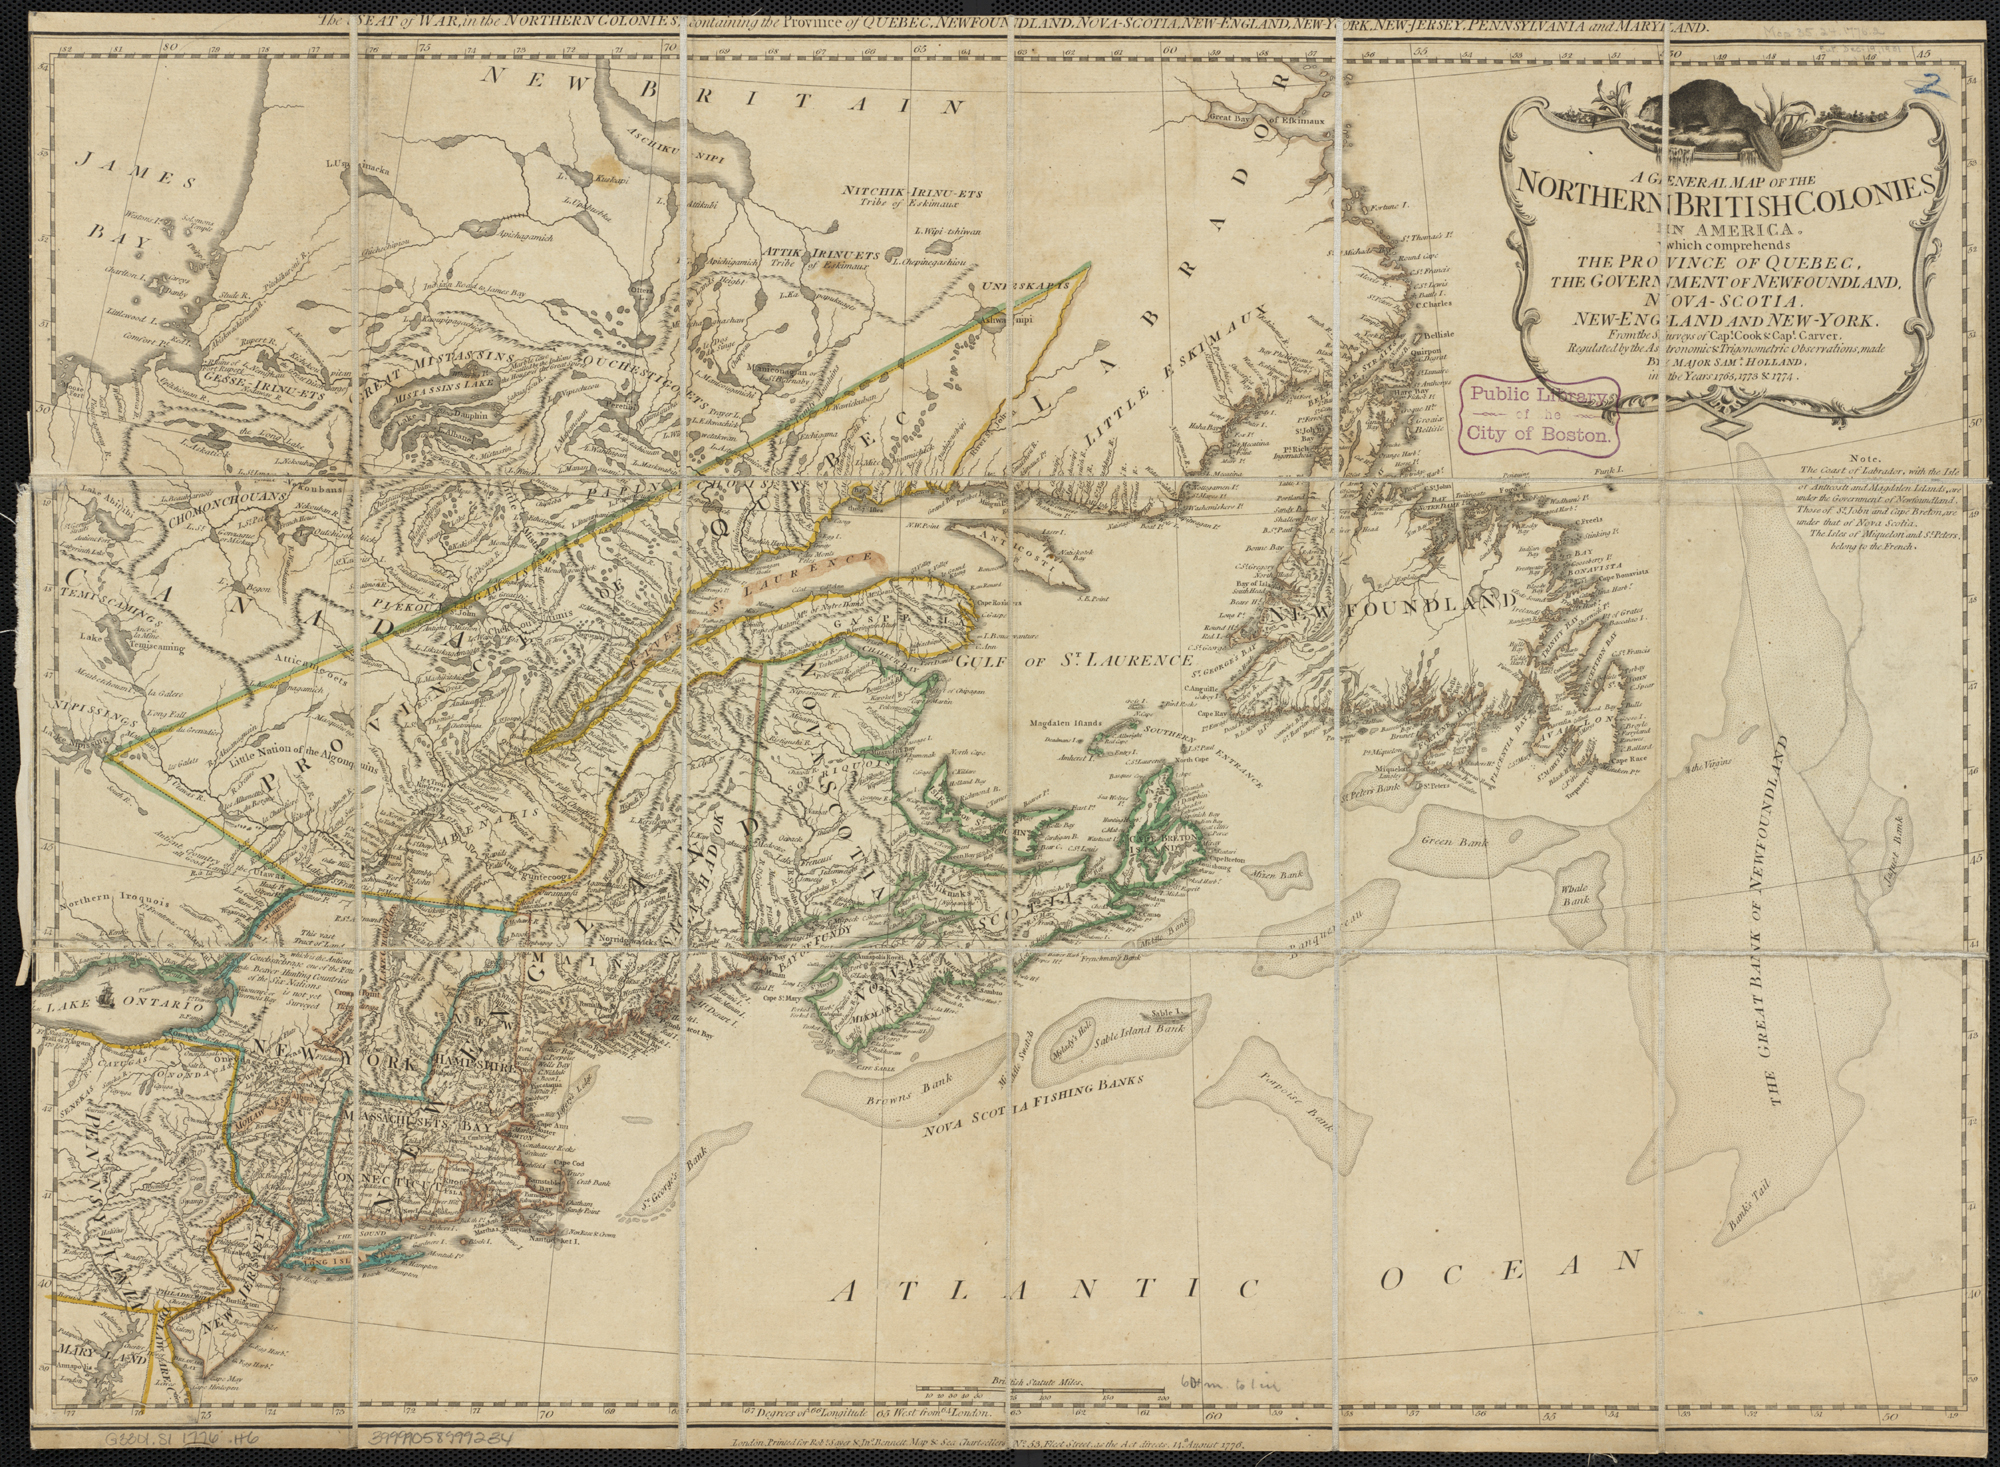 File:A general map of the northern British Colonies in America ...